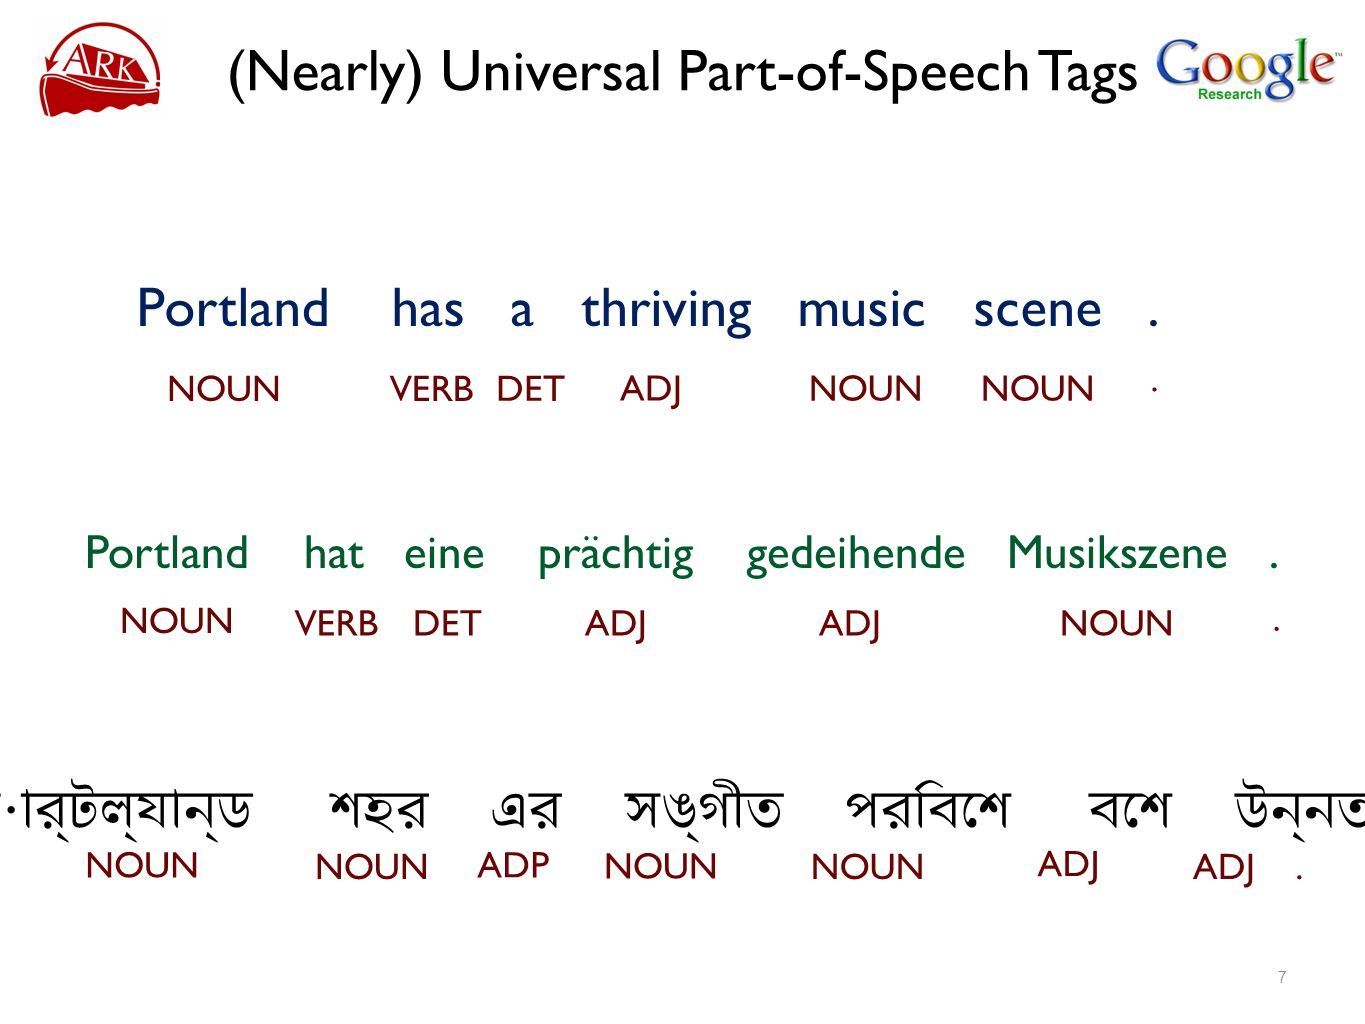 (Nearly) Universal Part-of-Speech Tags